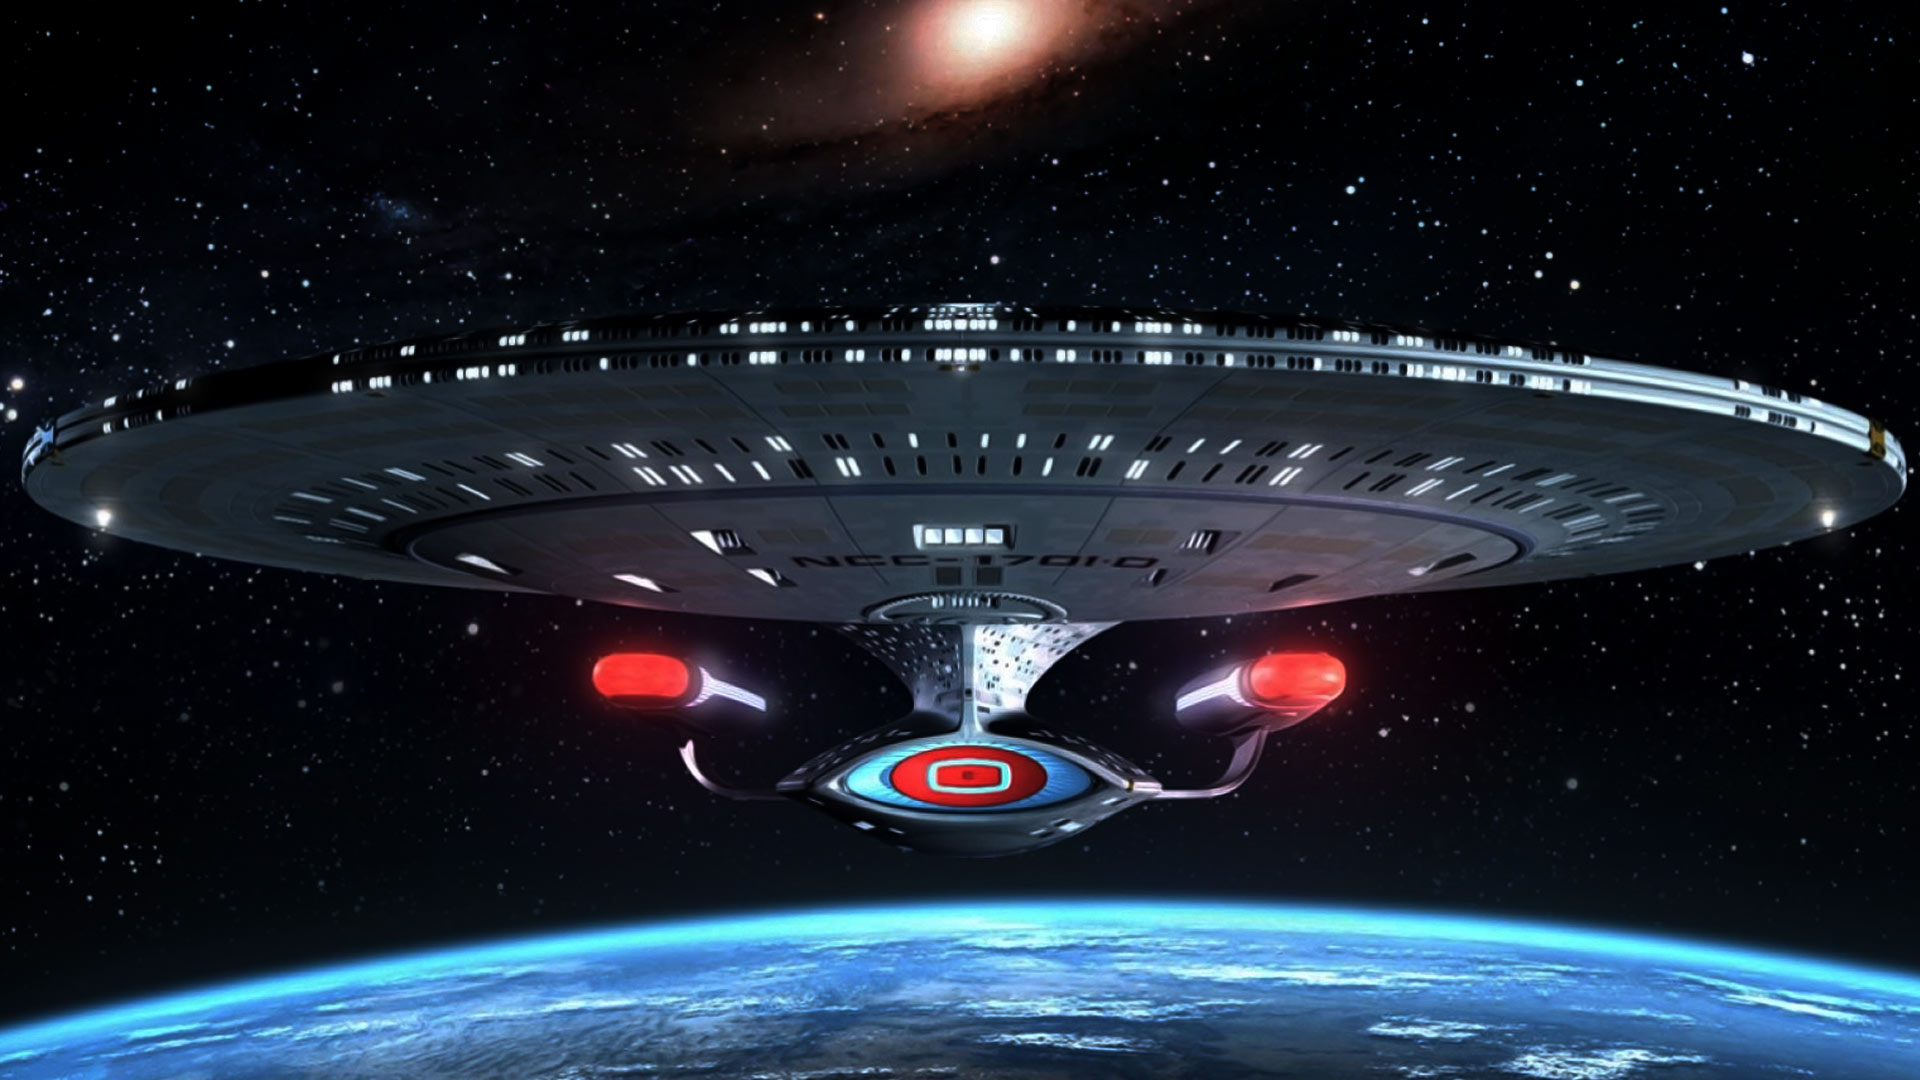 Sci Fi Star Trek Wallpaper HD 1920x1080 ImageBankbiz 1920x1080